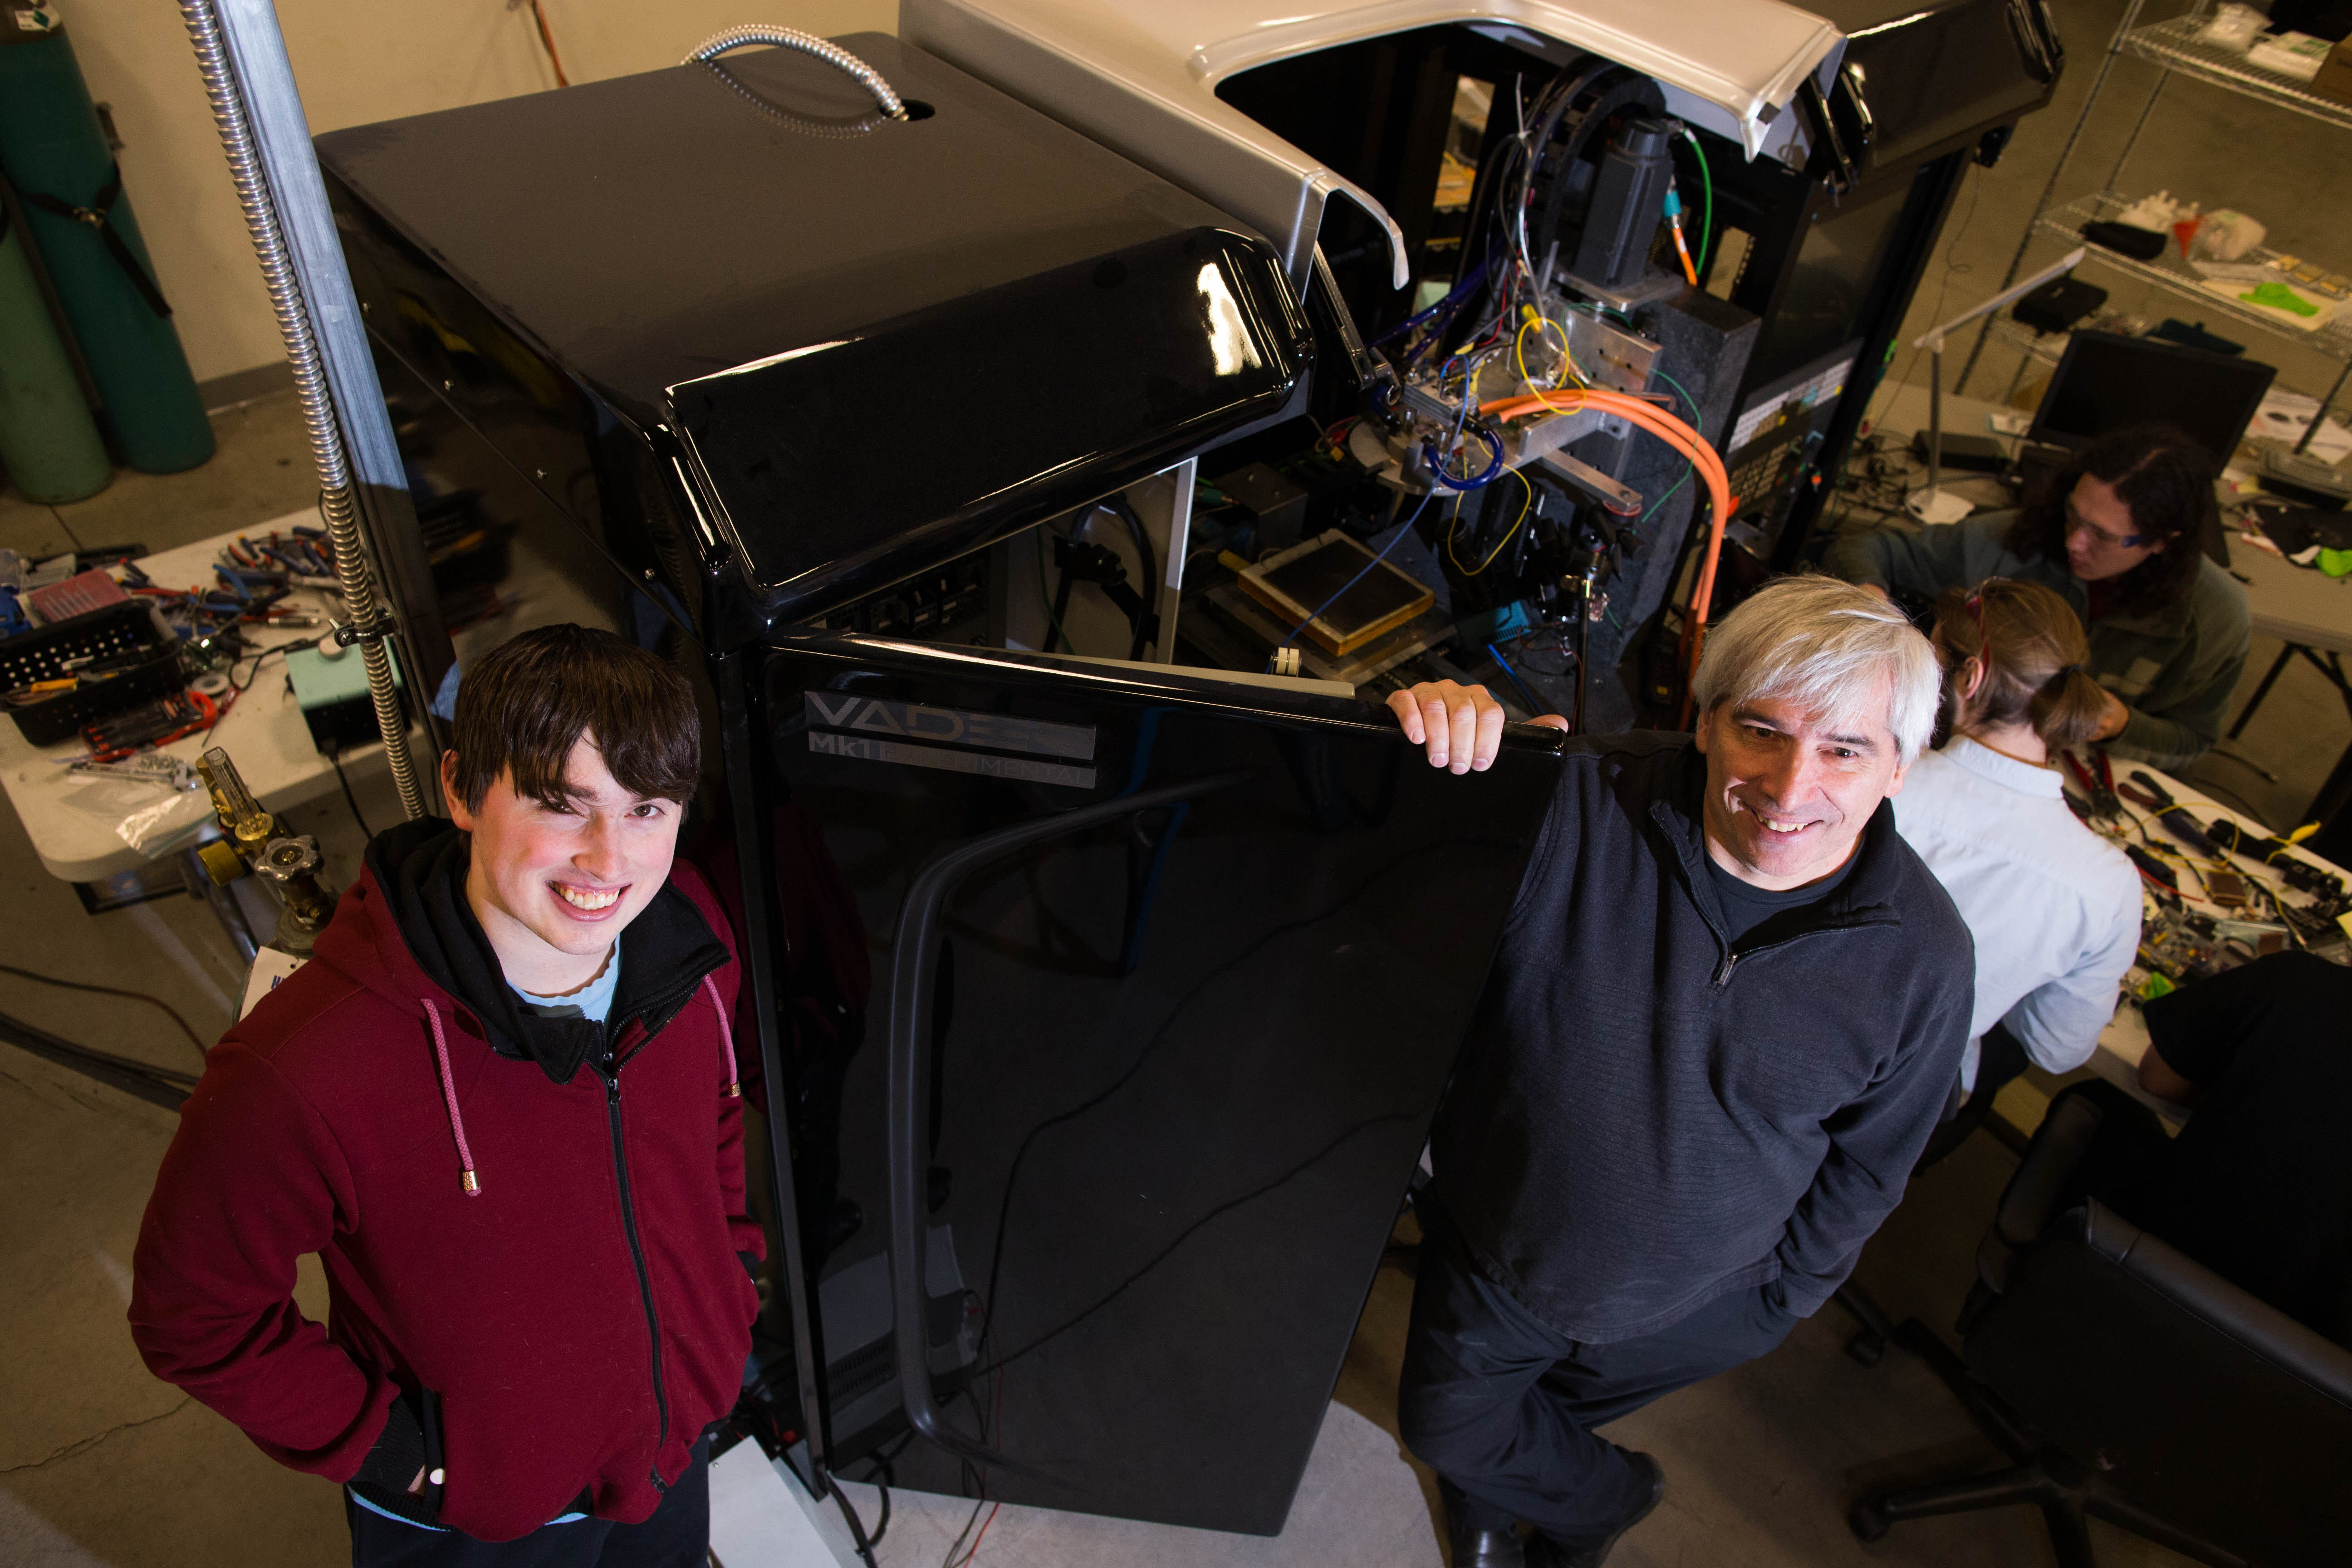 Zack and Scott Vader founded Vader Systems in the basement of their home five years ago. Here they pose with the Vader Mk1 Experimental liquid metal printer they designed and are manufacturing at the Vader Systems facility in Amherst.  (Derek Gee/Buffalo News)